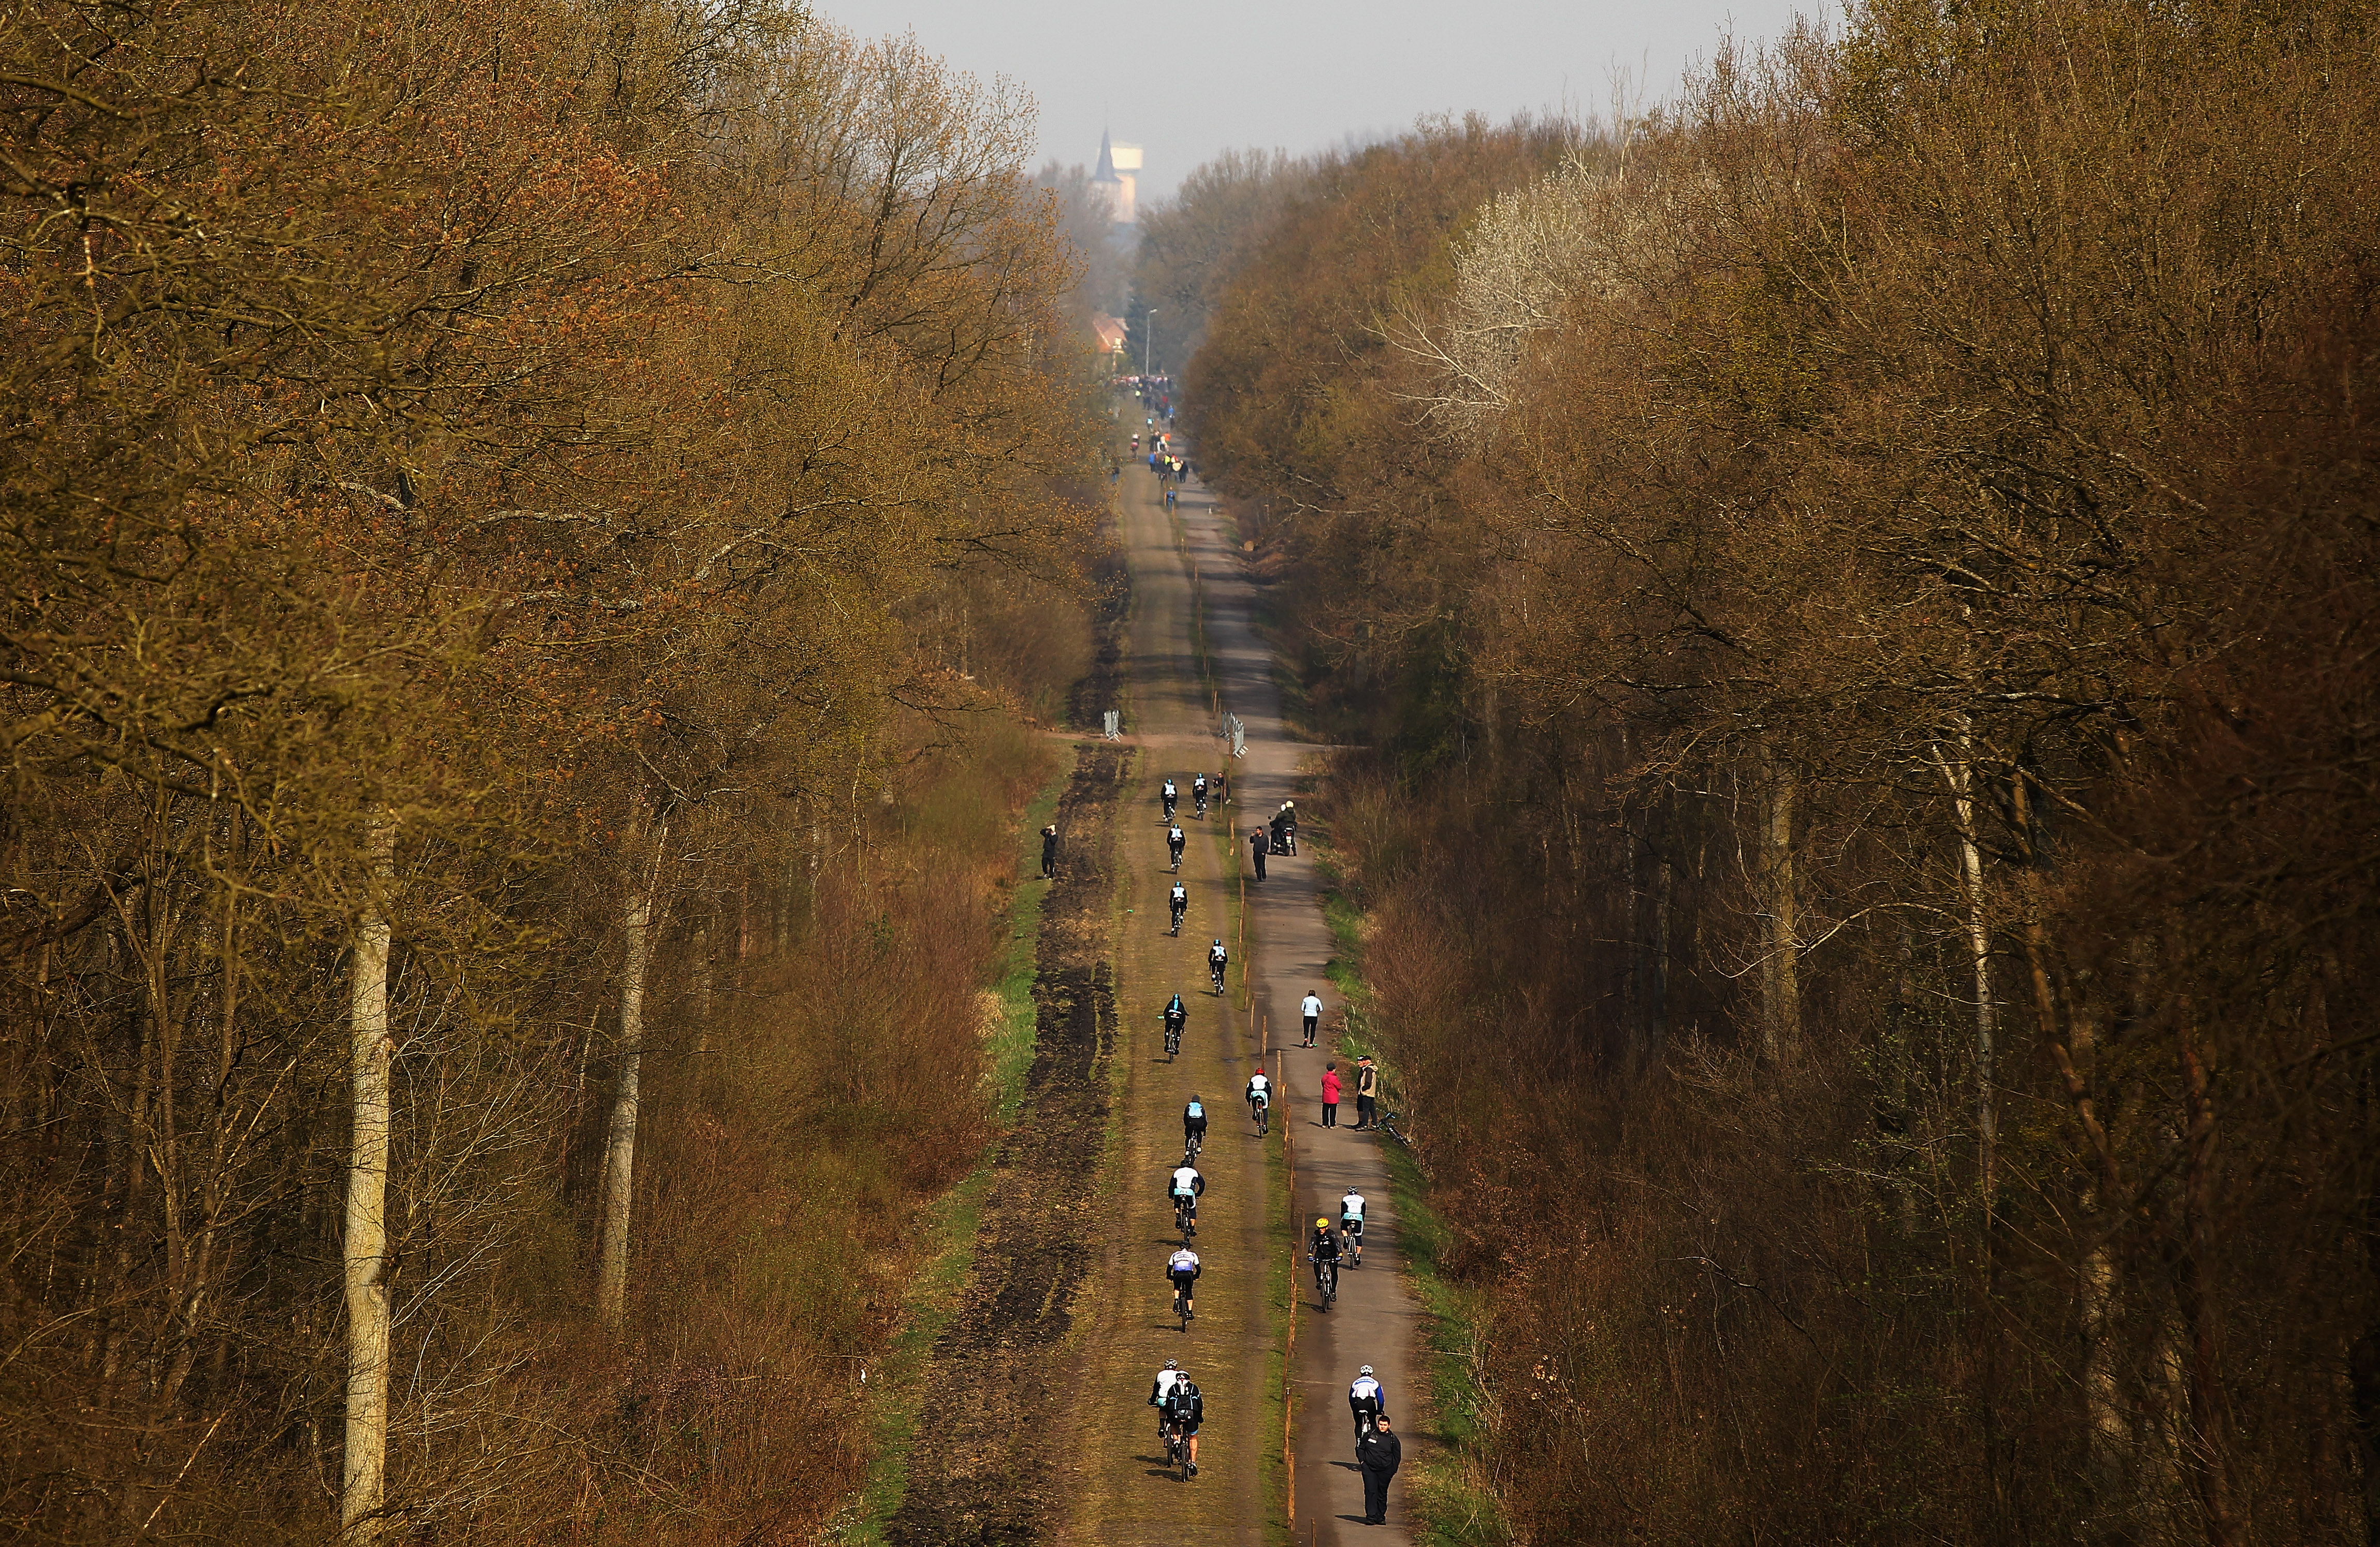 Photo: To Hell On A Bike - Riding Paris-Roubaix: The Toughest Race In Cycling. Bryn Lennon/Getty Images